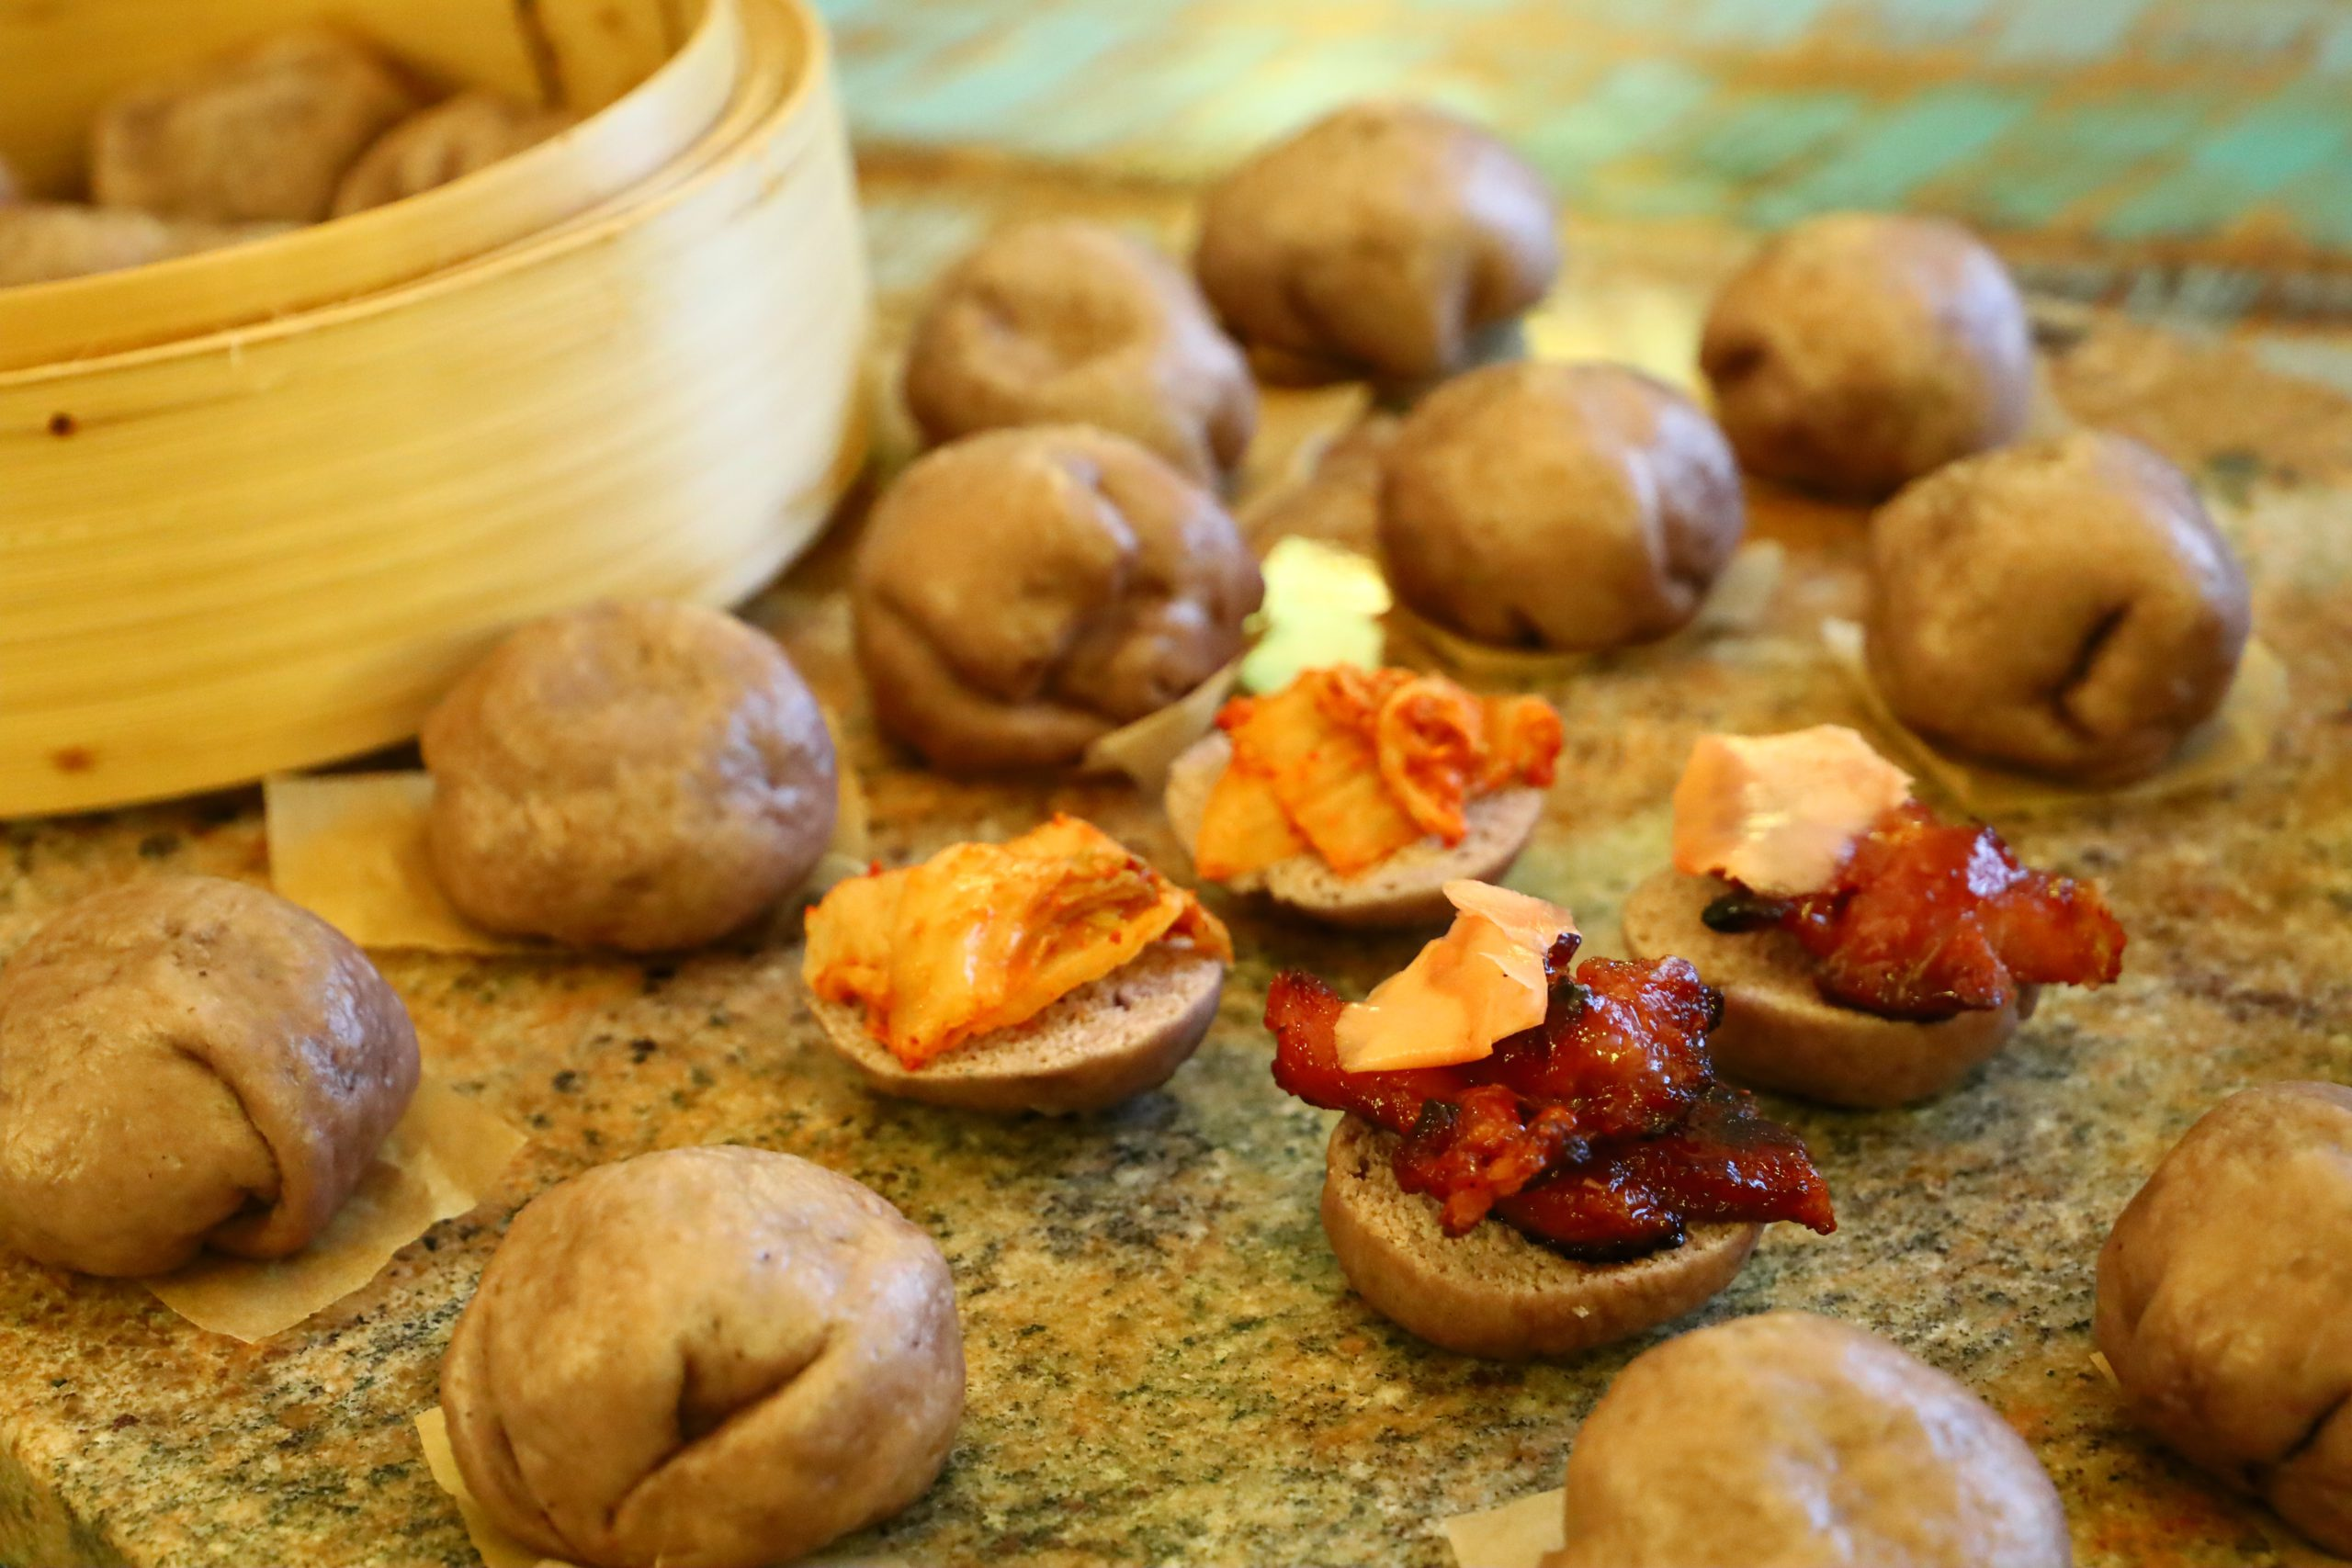 Our Purple Sweet Potato and Taro Stuffed Steamed Buns and Asian/Pacific Sliders